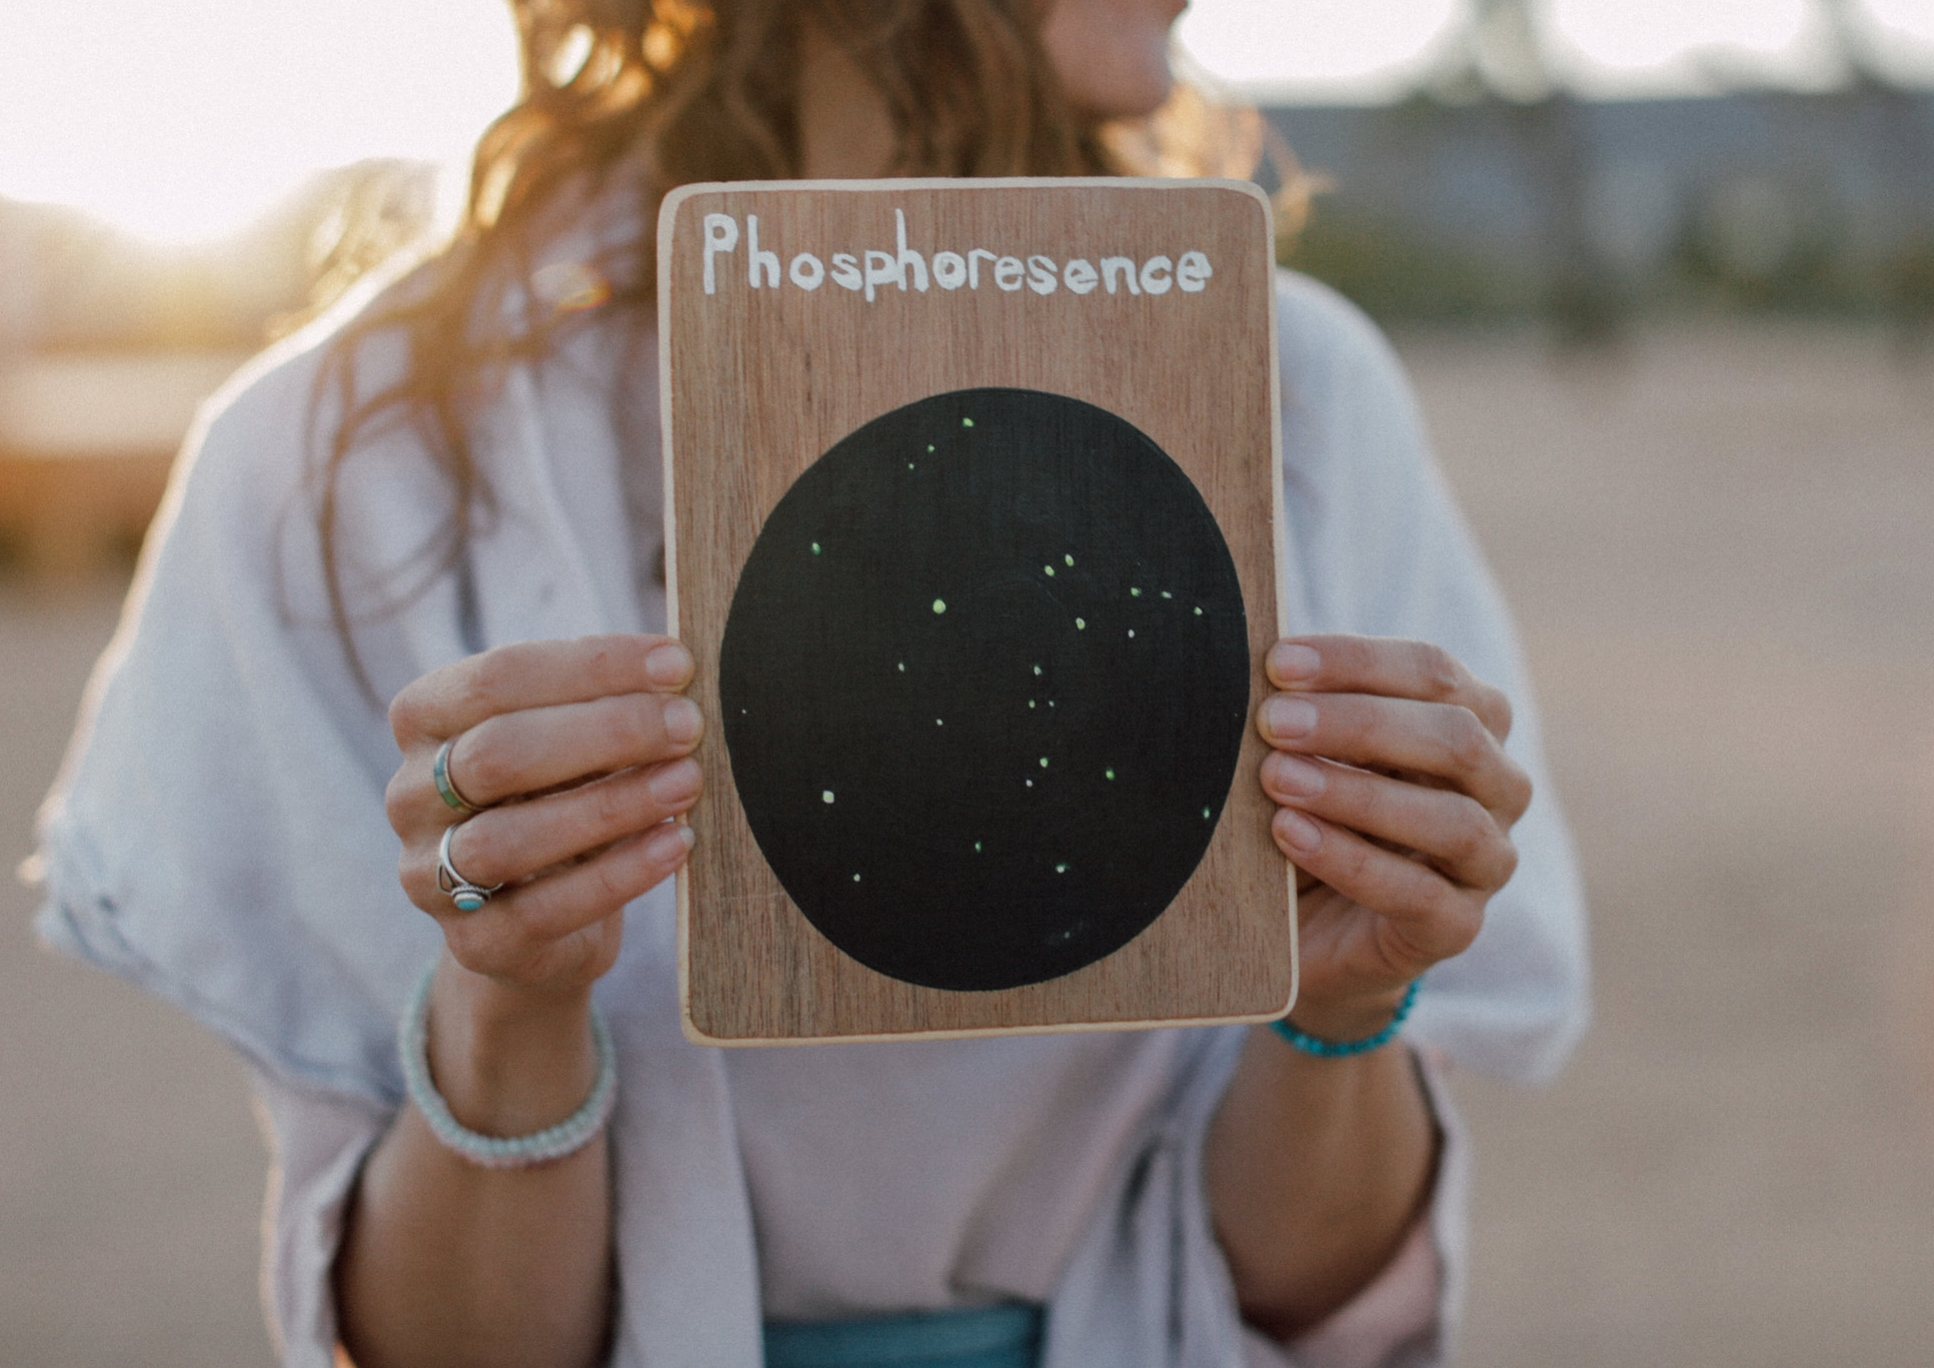 'Phosphoresence' Animal Medicine Cards by Adriana Atema. photo by Leslie Satterfield